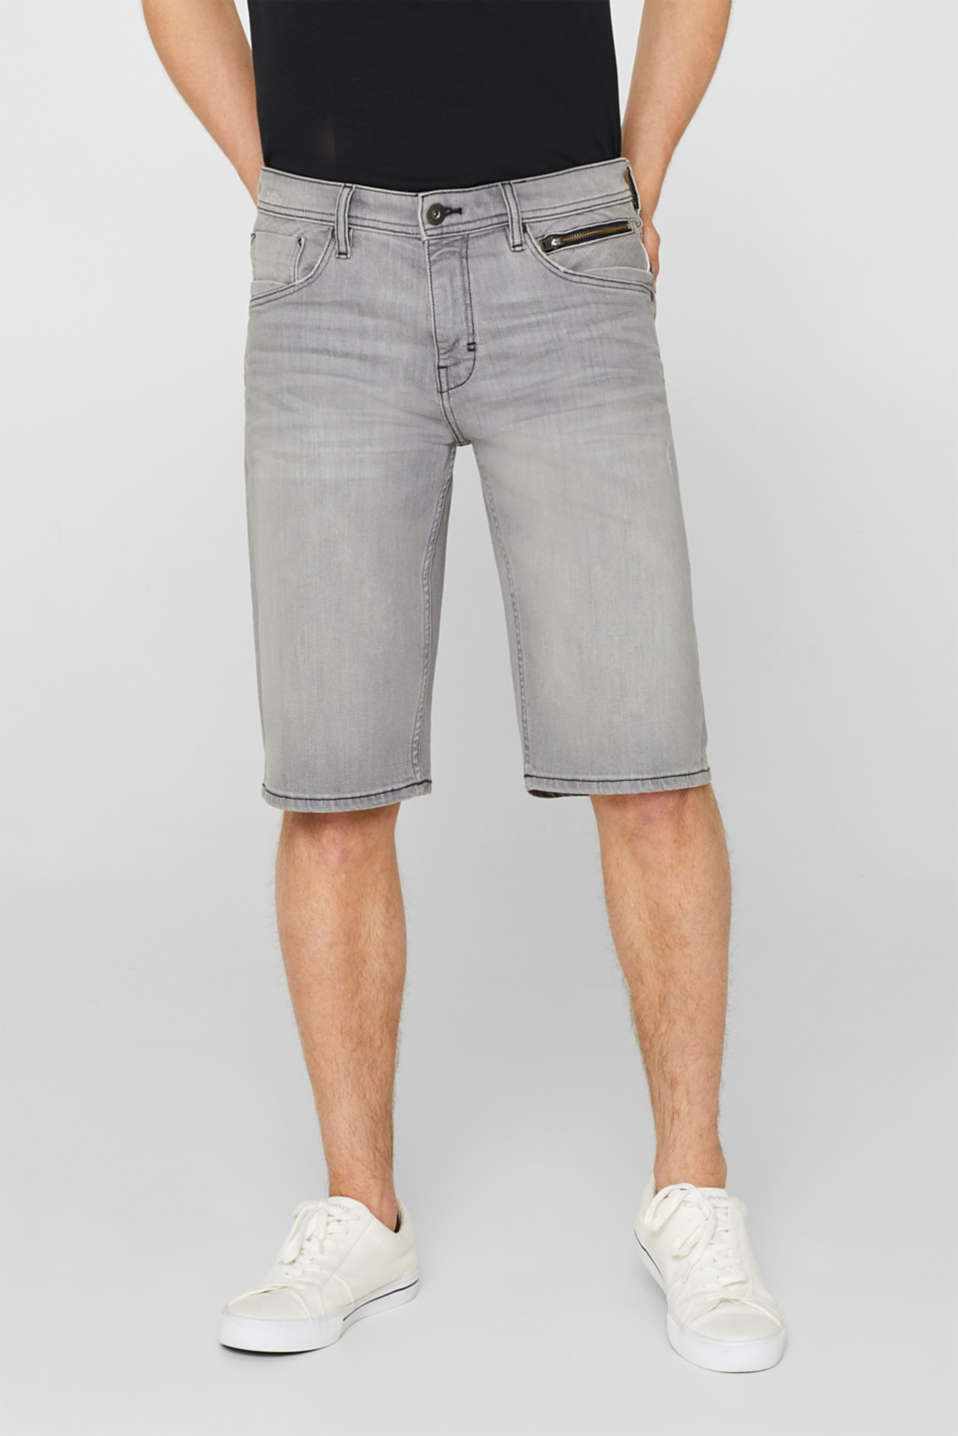 edc - Stretch denim shorts with a vintage finish